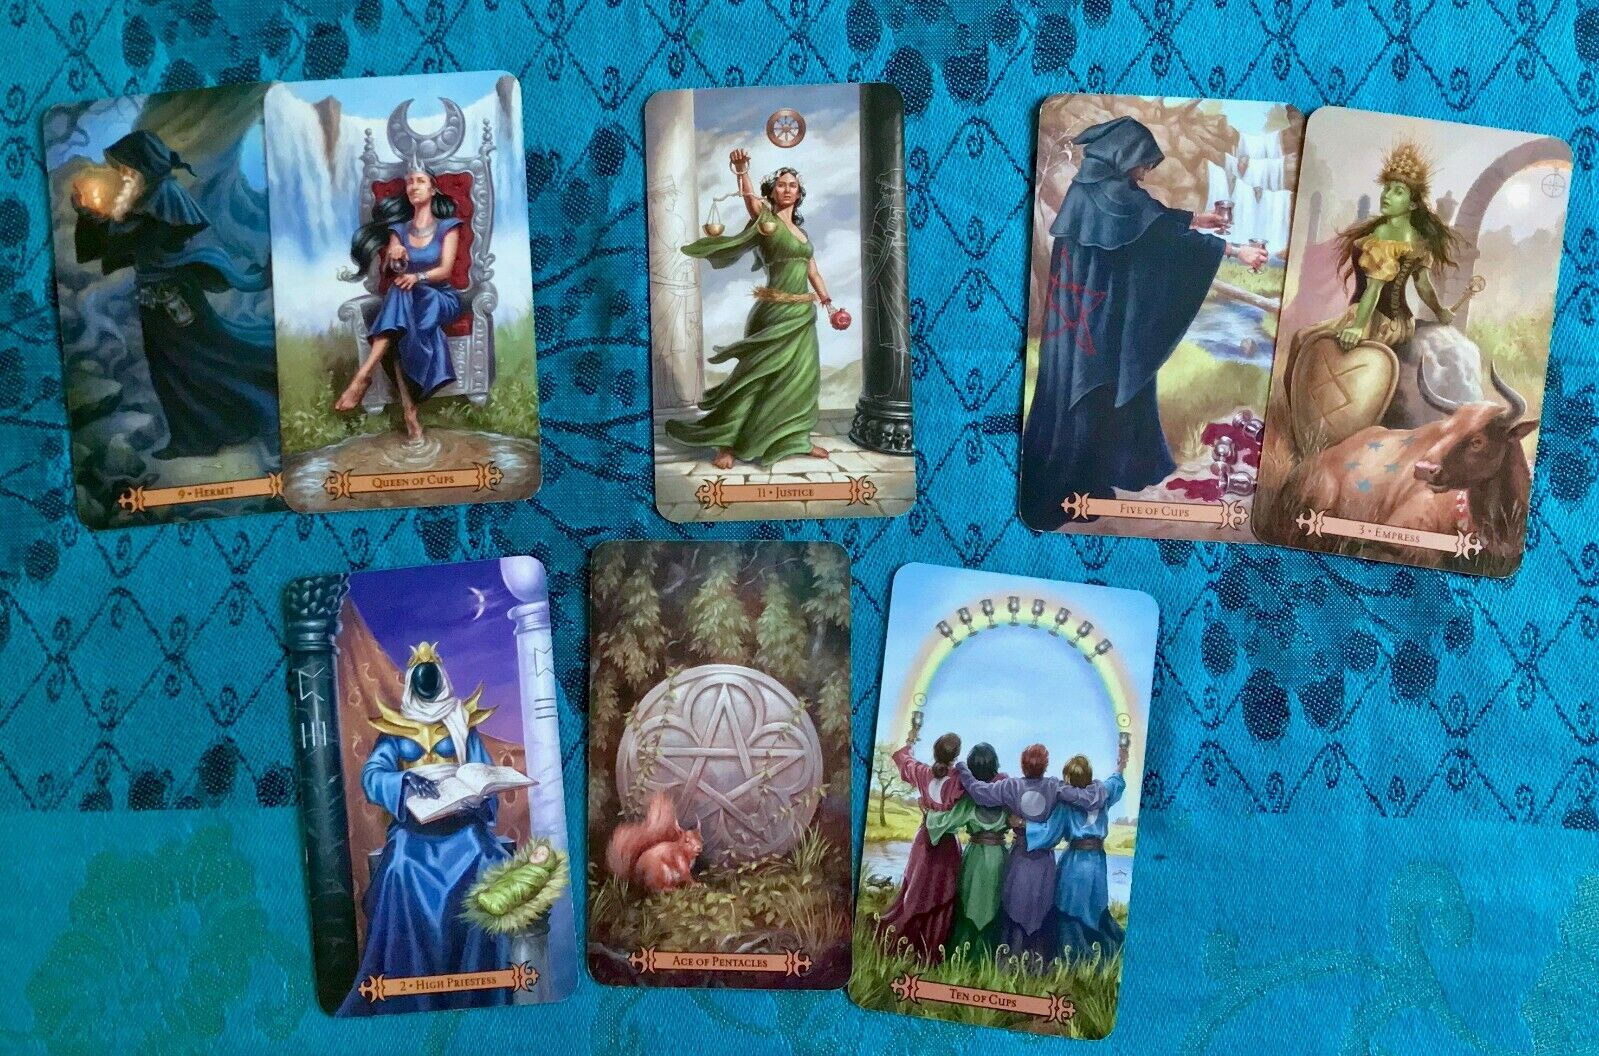 30 Min Tarot Psychic Reading By Phone. No Card Limit, Accurate, Fast Scheduling. - $10.00